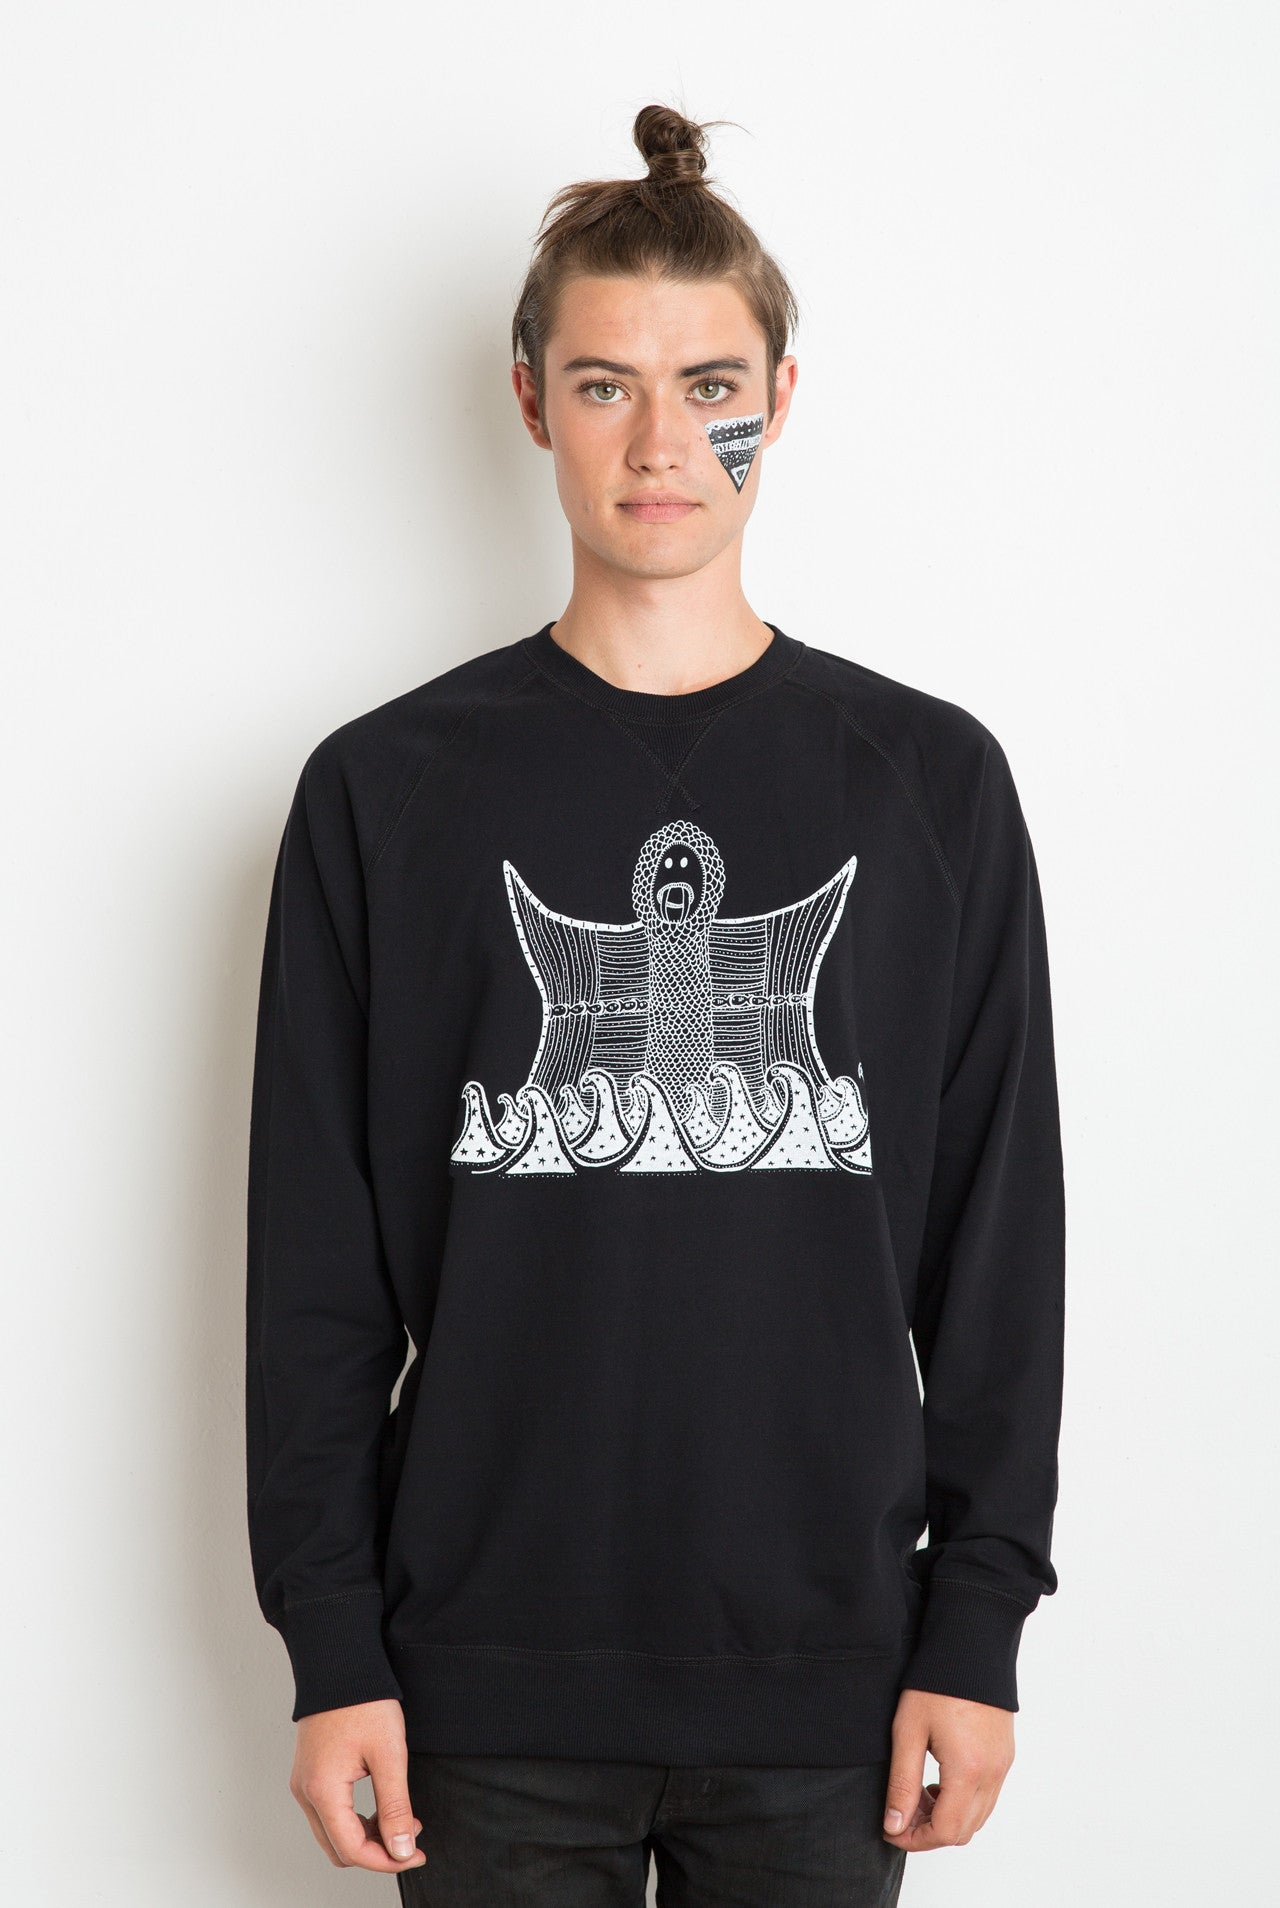 Frederick the Friendless Unisex Royal Sweatshirt